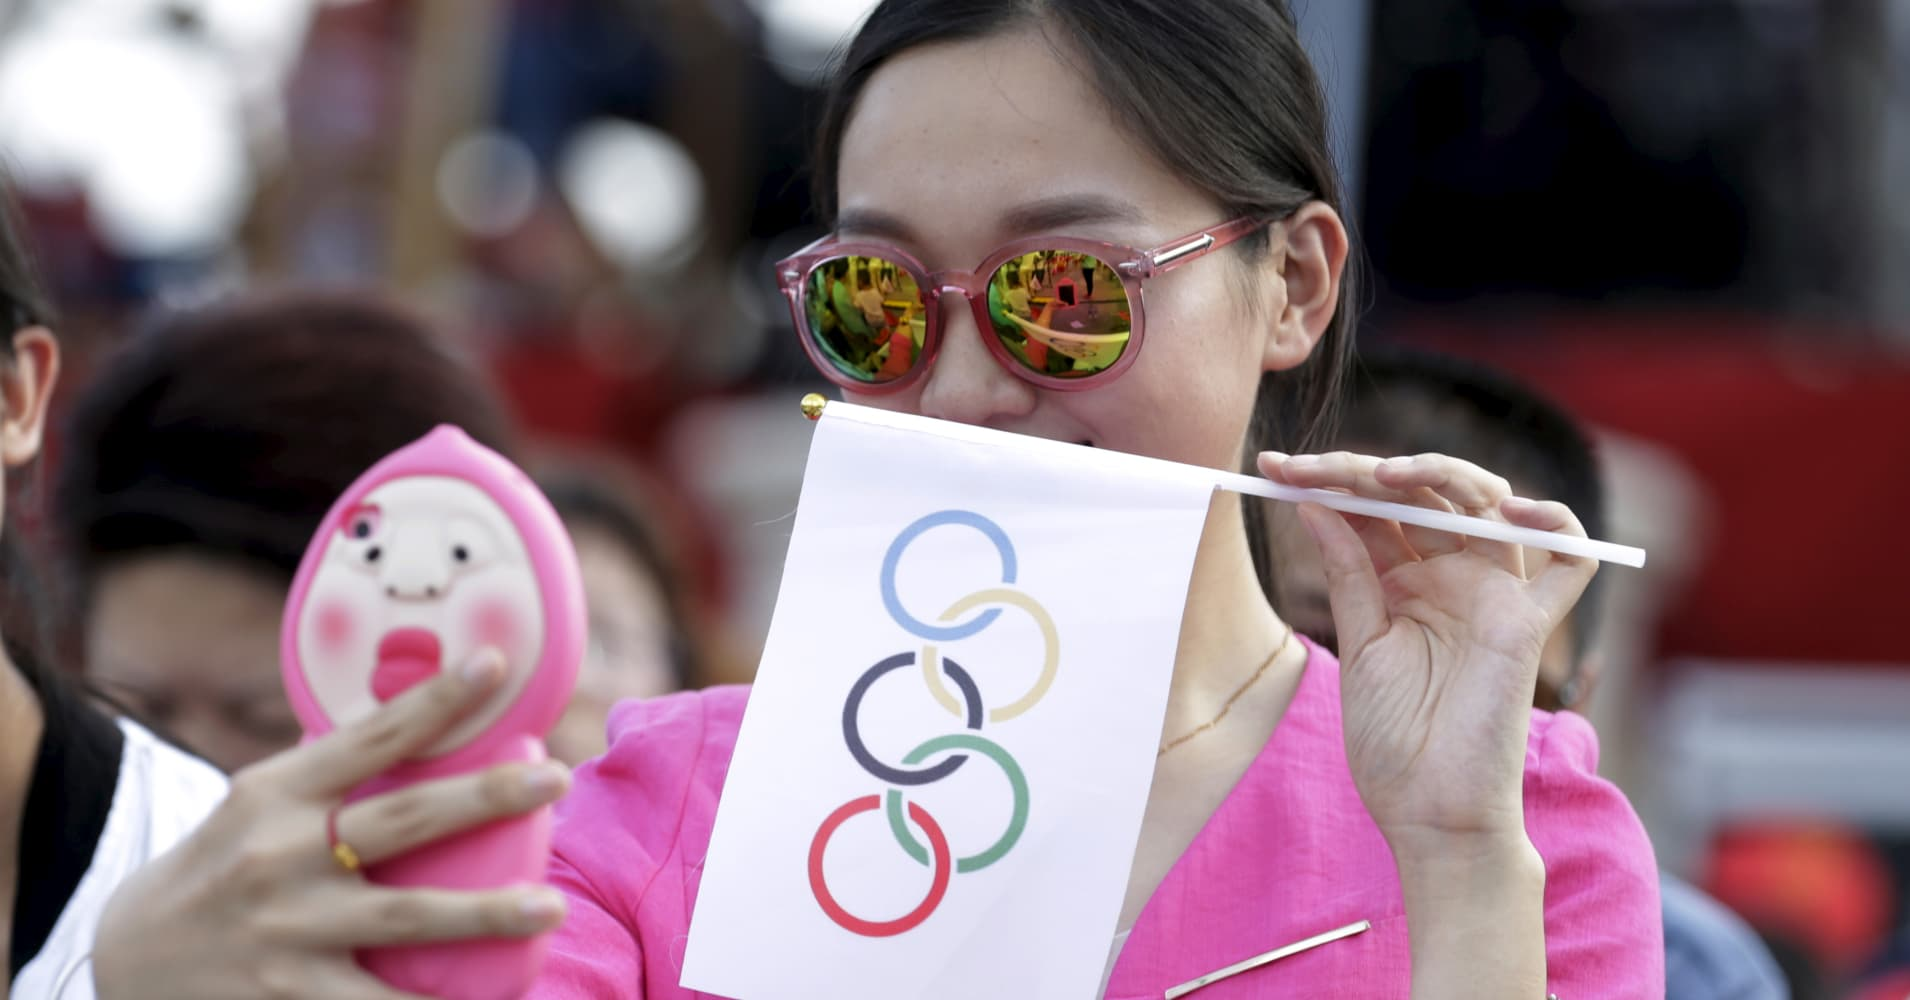 Snap snags NBC ad deal worth up to $75 million for the Winter Olympics, report says